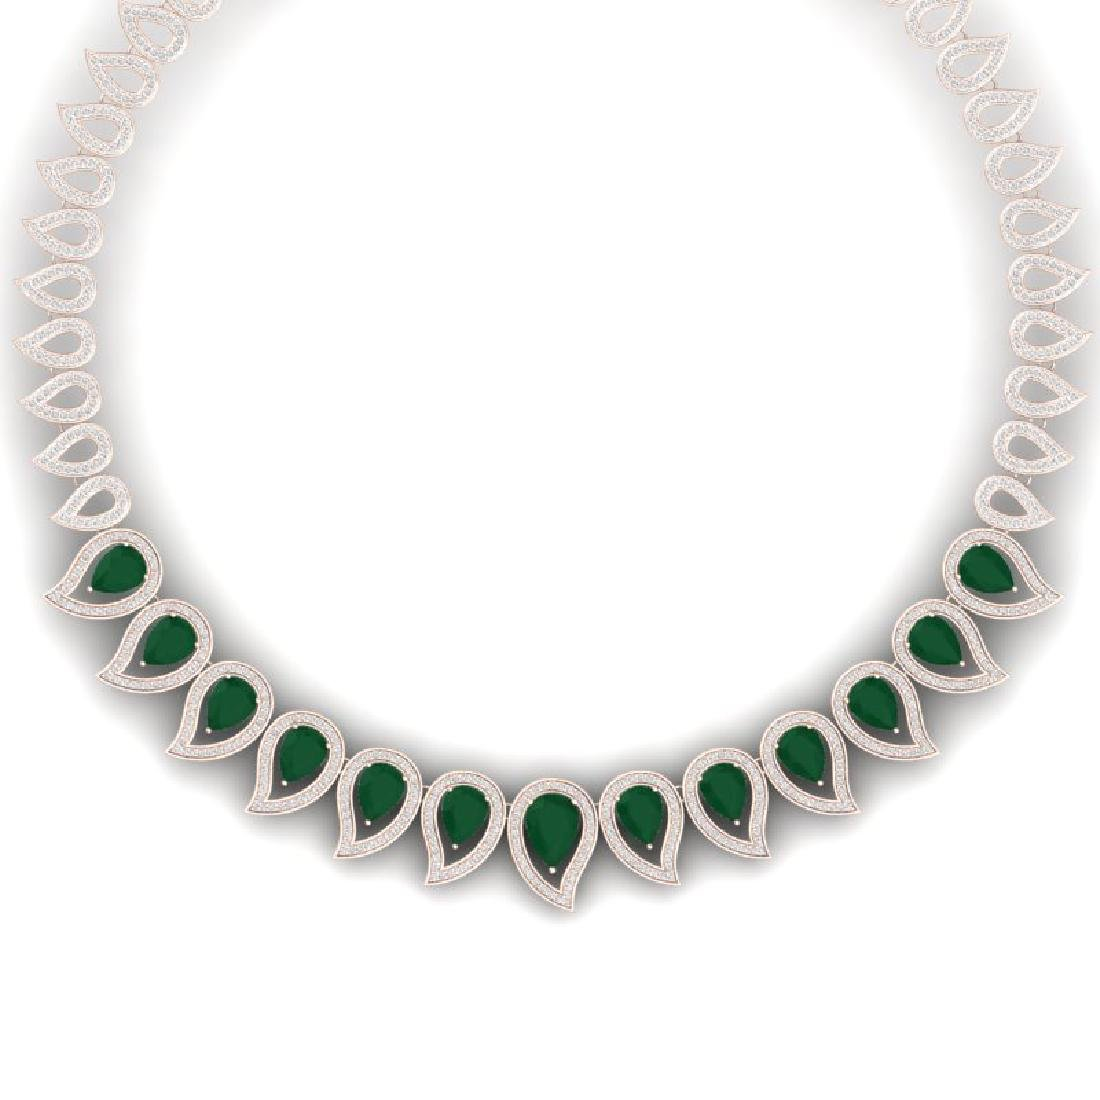 33.4 CTW Royalty Emerald & VS Diamond Necklace 18K Rose